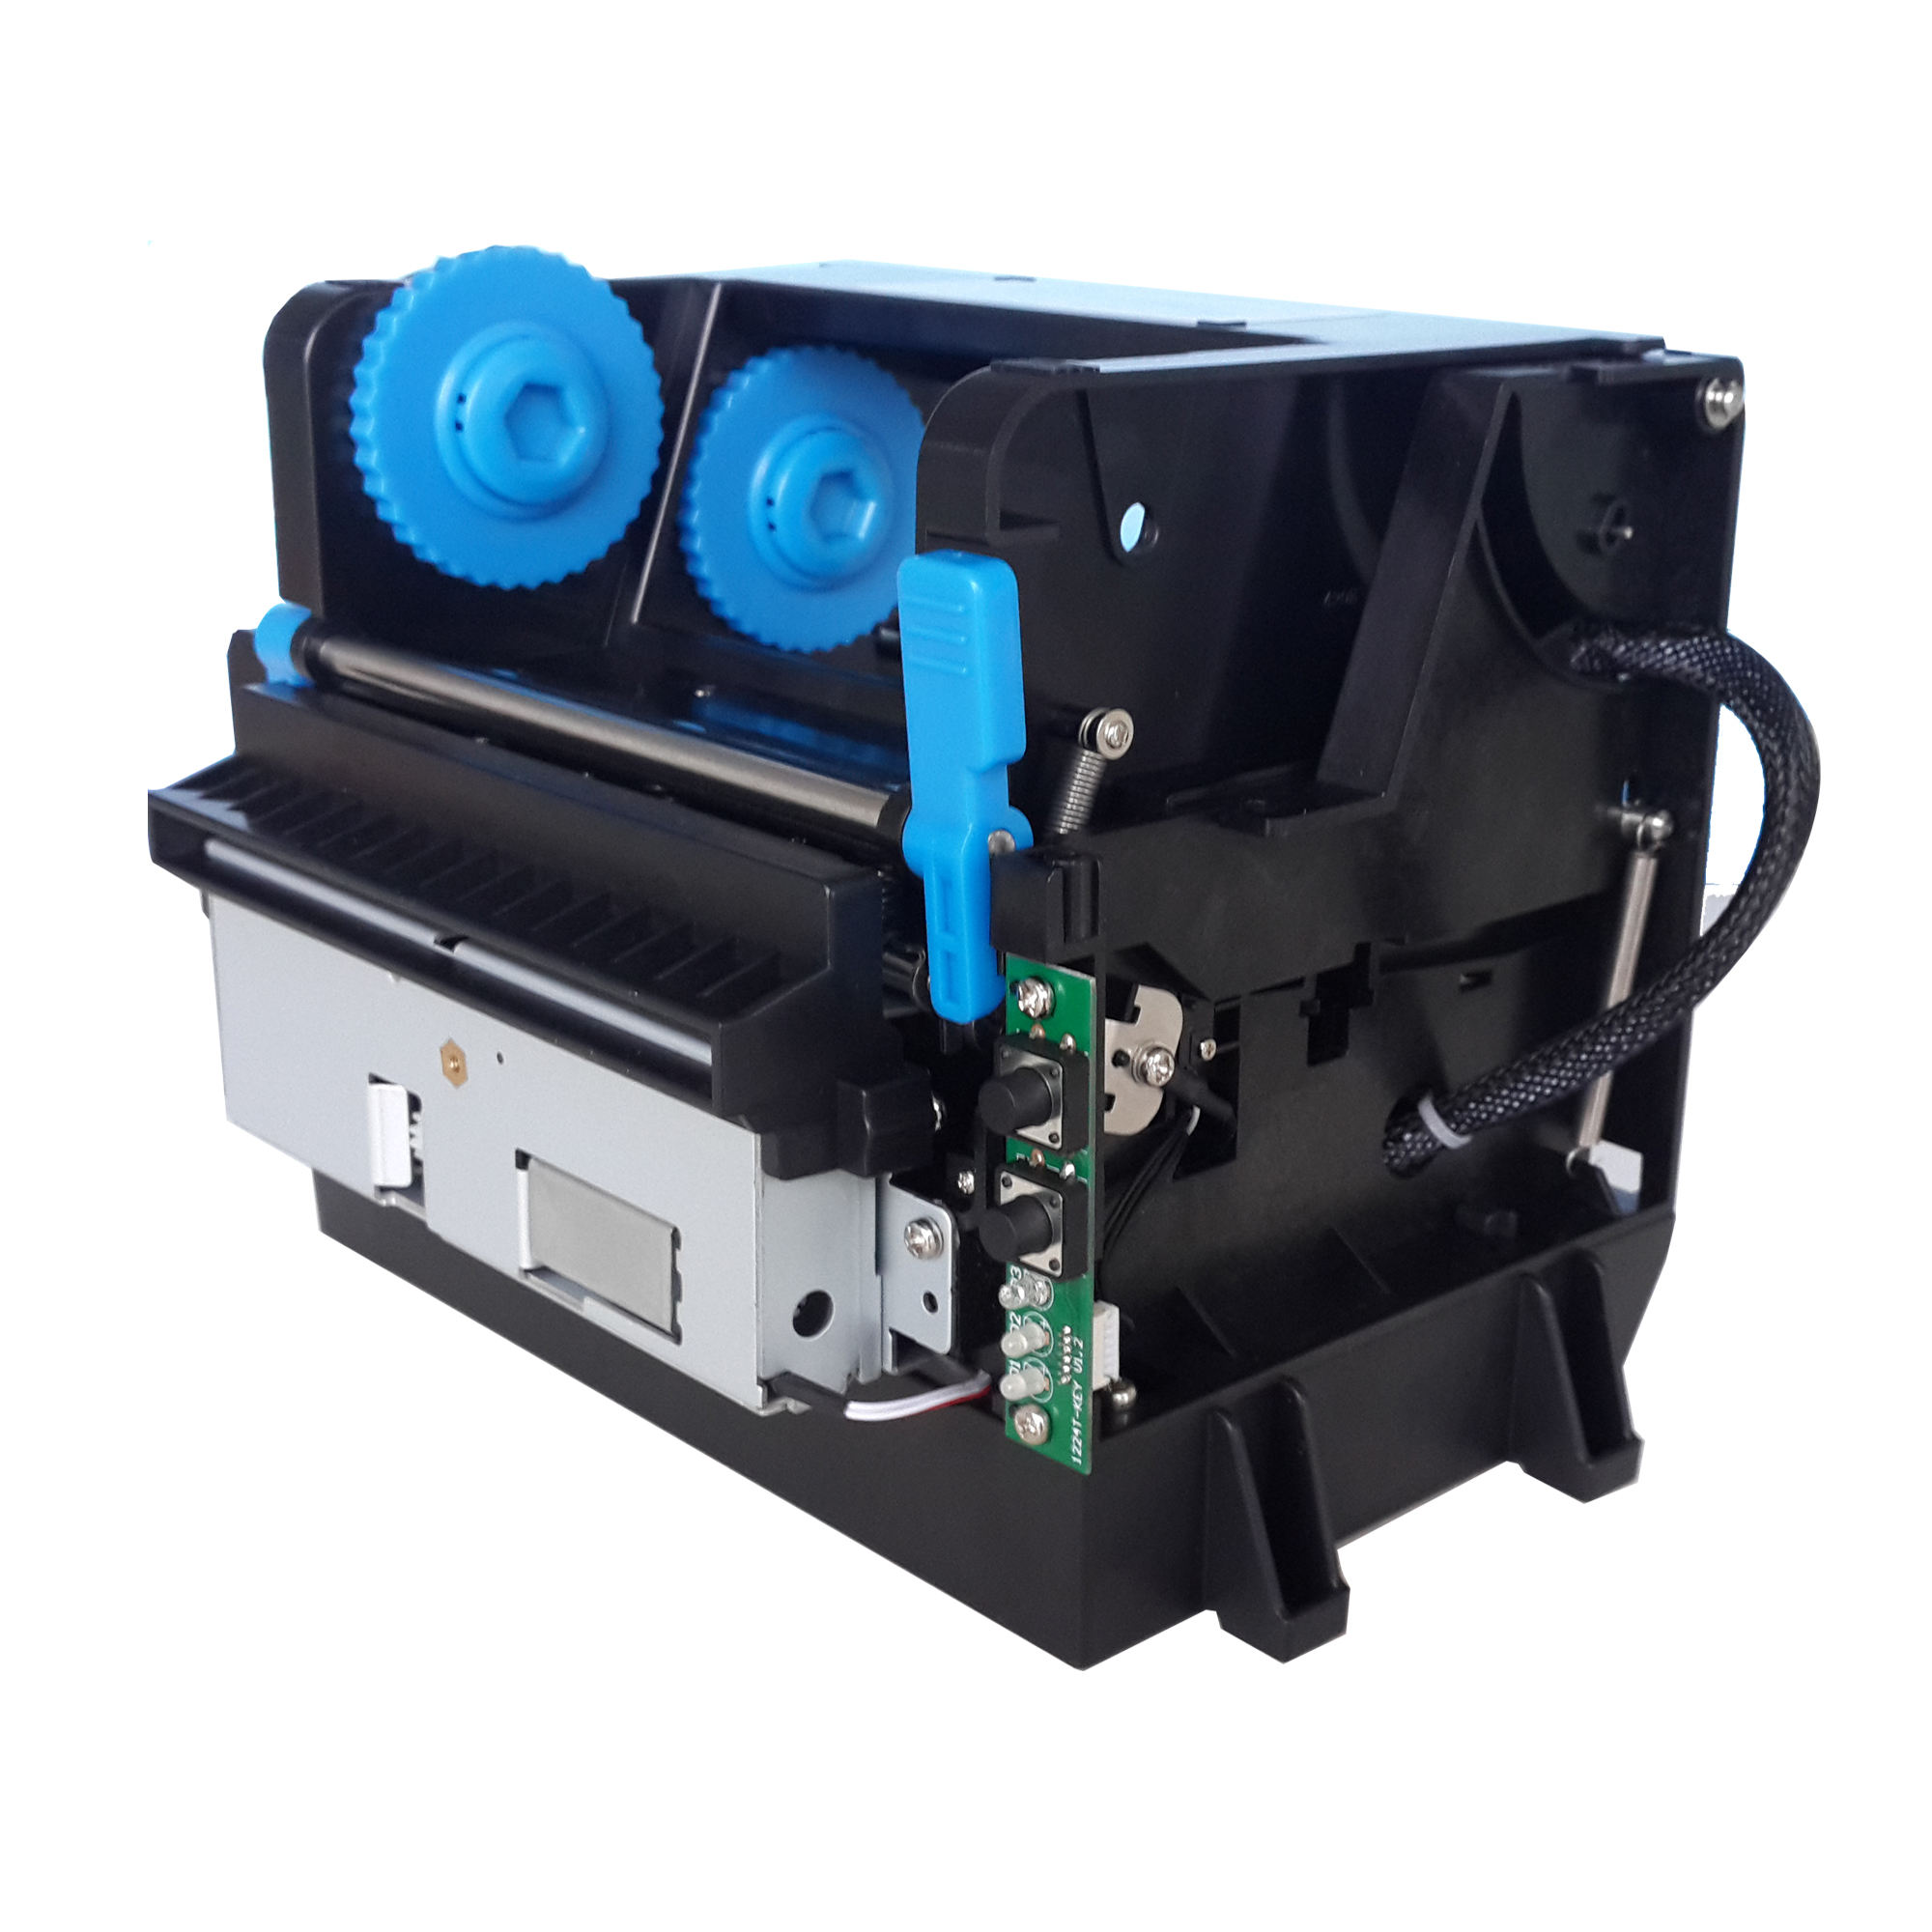 Gprinter Kiosk ticket printer, thermal barcode label printer, Thermal transfer label printer GP-3212/GP-3212C